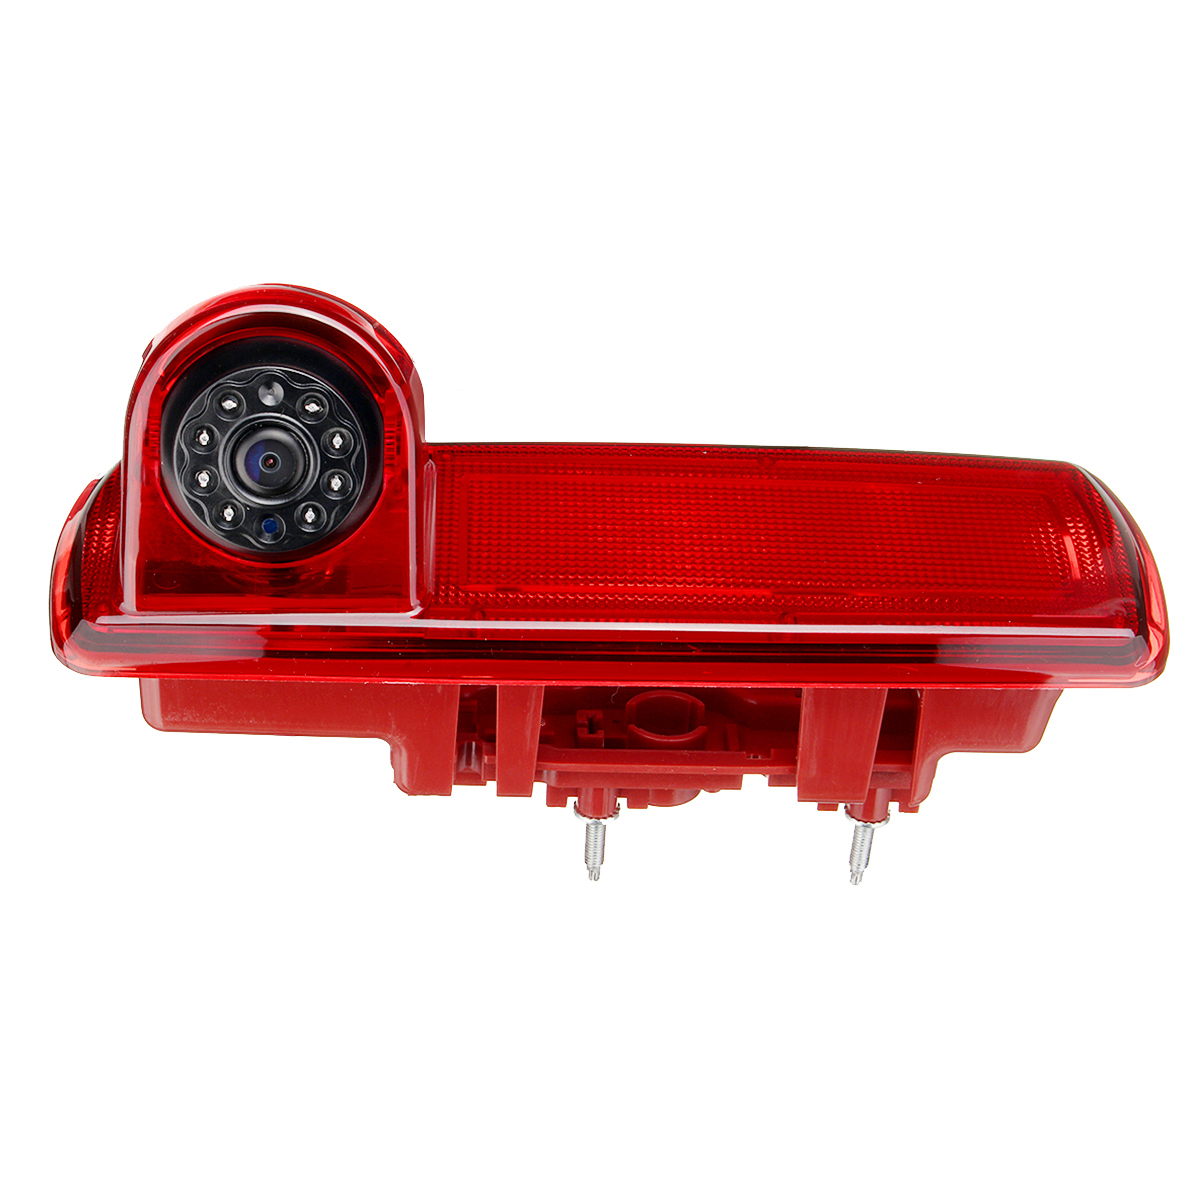 12V 6W 170 Degrees Angle Lens Car Rear View Camera Kit For Brake Light Integration